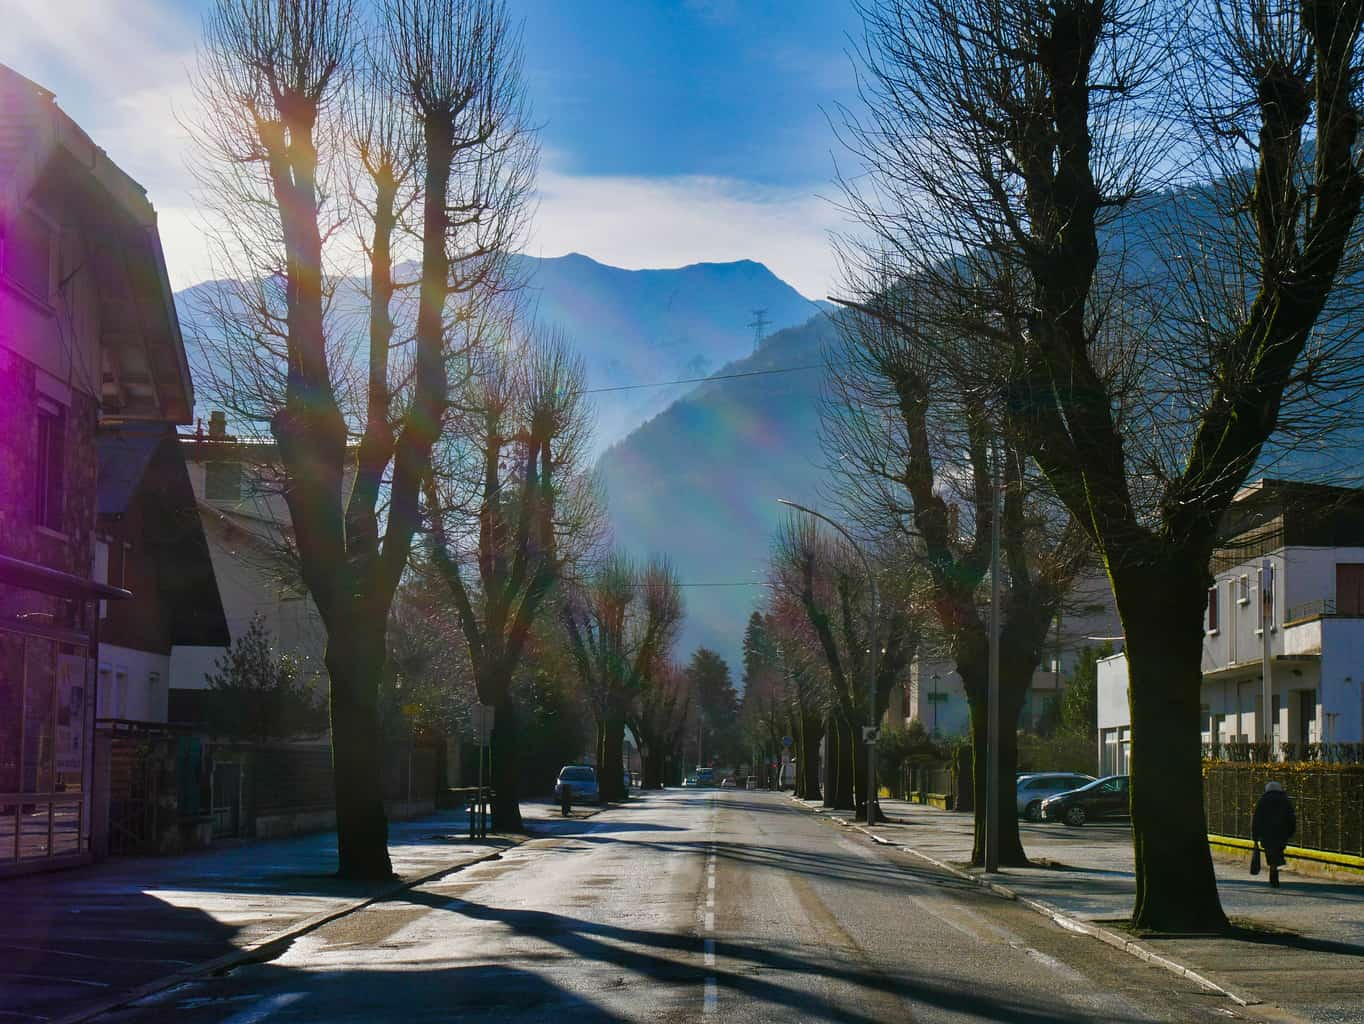 The French Alps from a street in Albertville from the middle of the road with trees either side